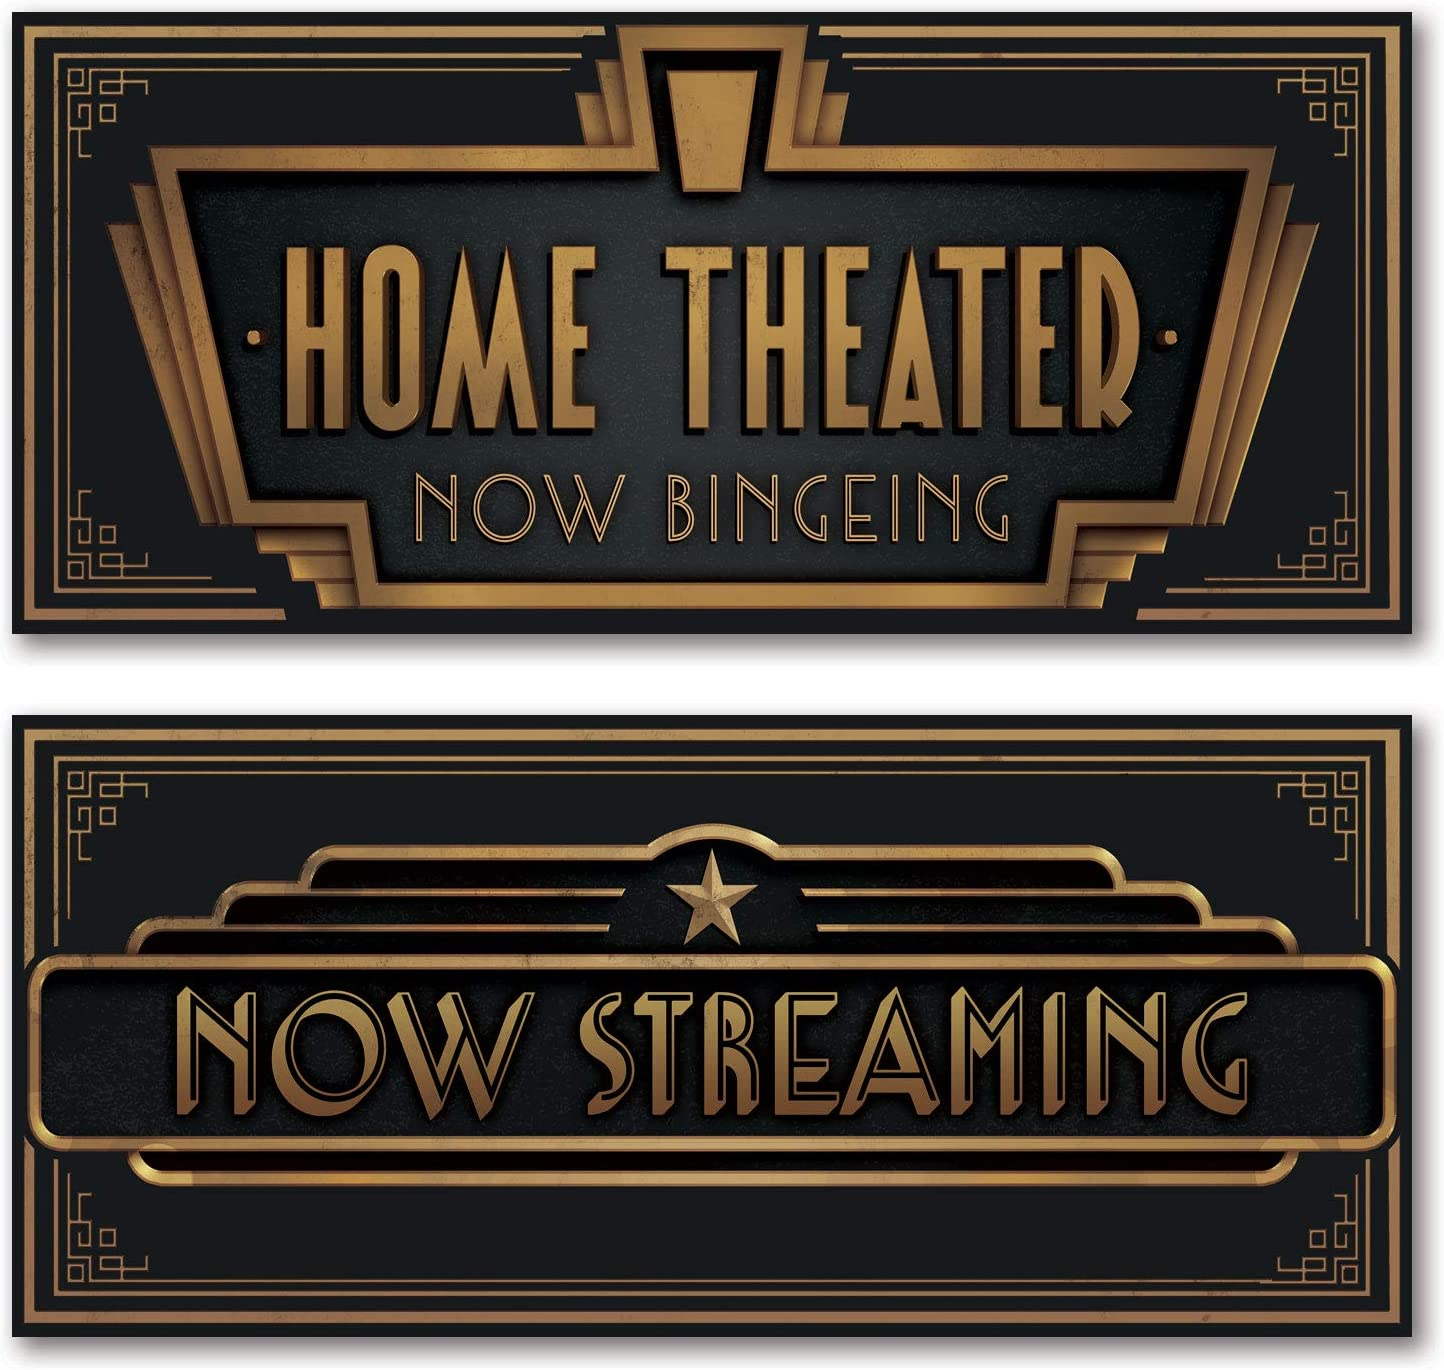 """Movie Night! Classic Old-Fashioned Cinema """"Now Streaming"""" and """"Home Theater: Now Bingeing"""" Set; 2-18x6"""" UNFRAMED Paper Posters"""